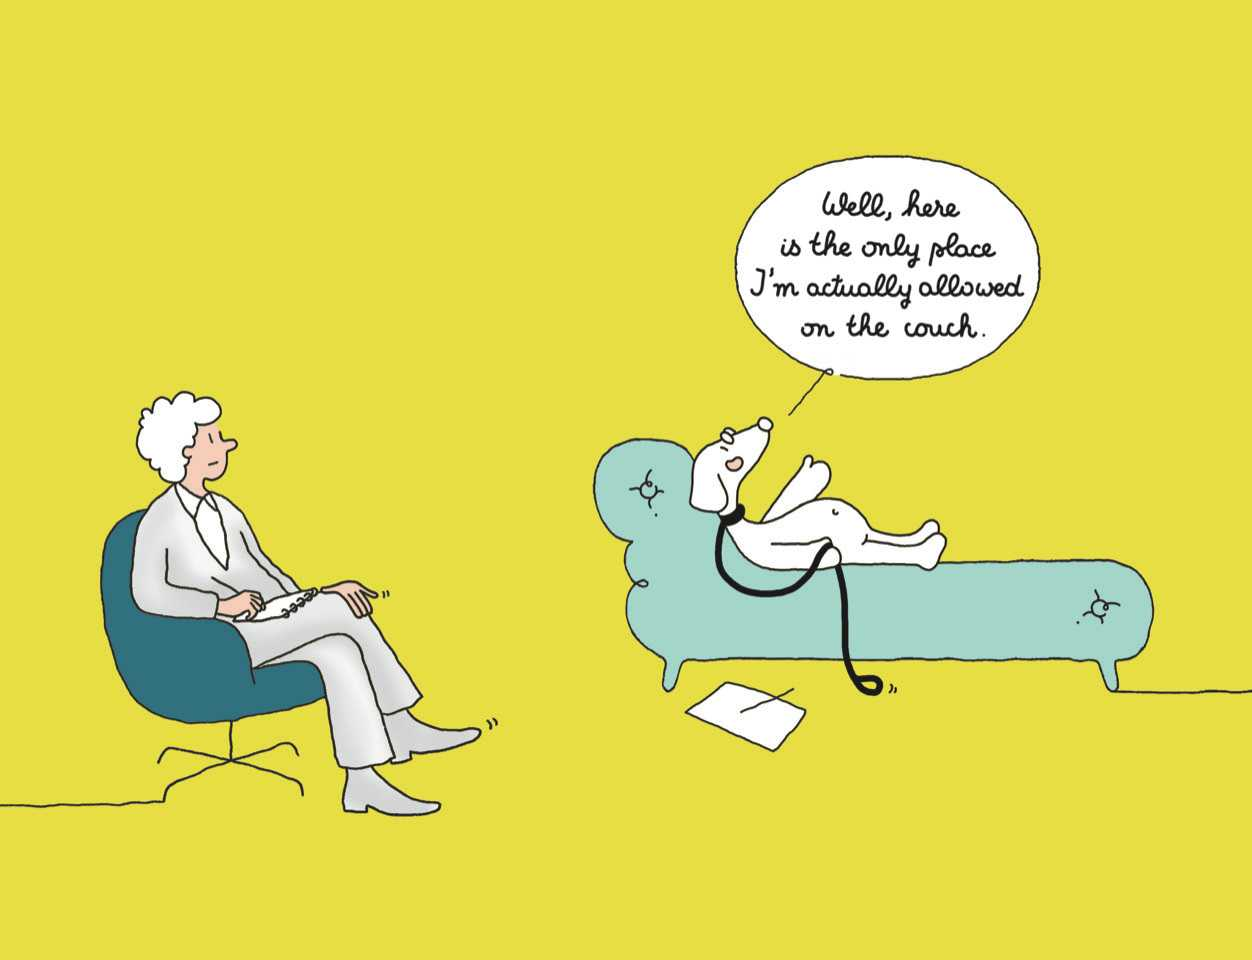 COLOR-IAMSEEINGSOMEONE-Book2Marabout-DogOnTheSofa